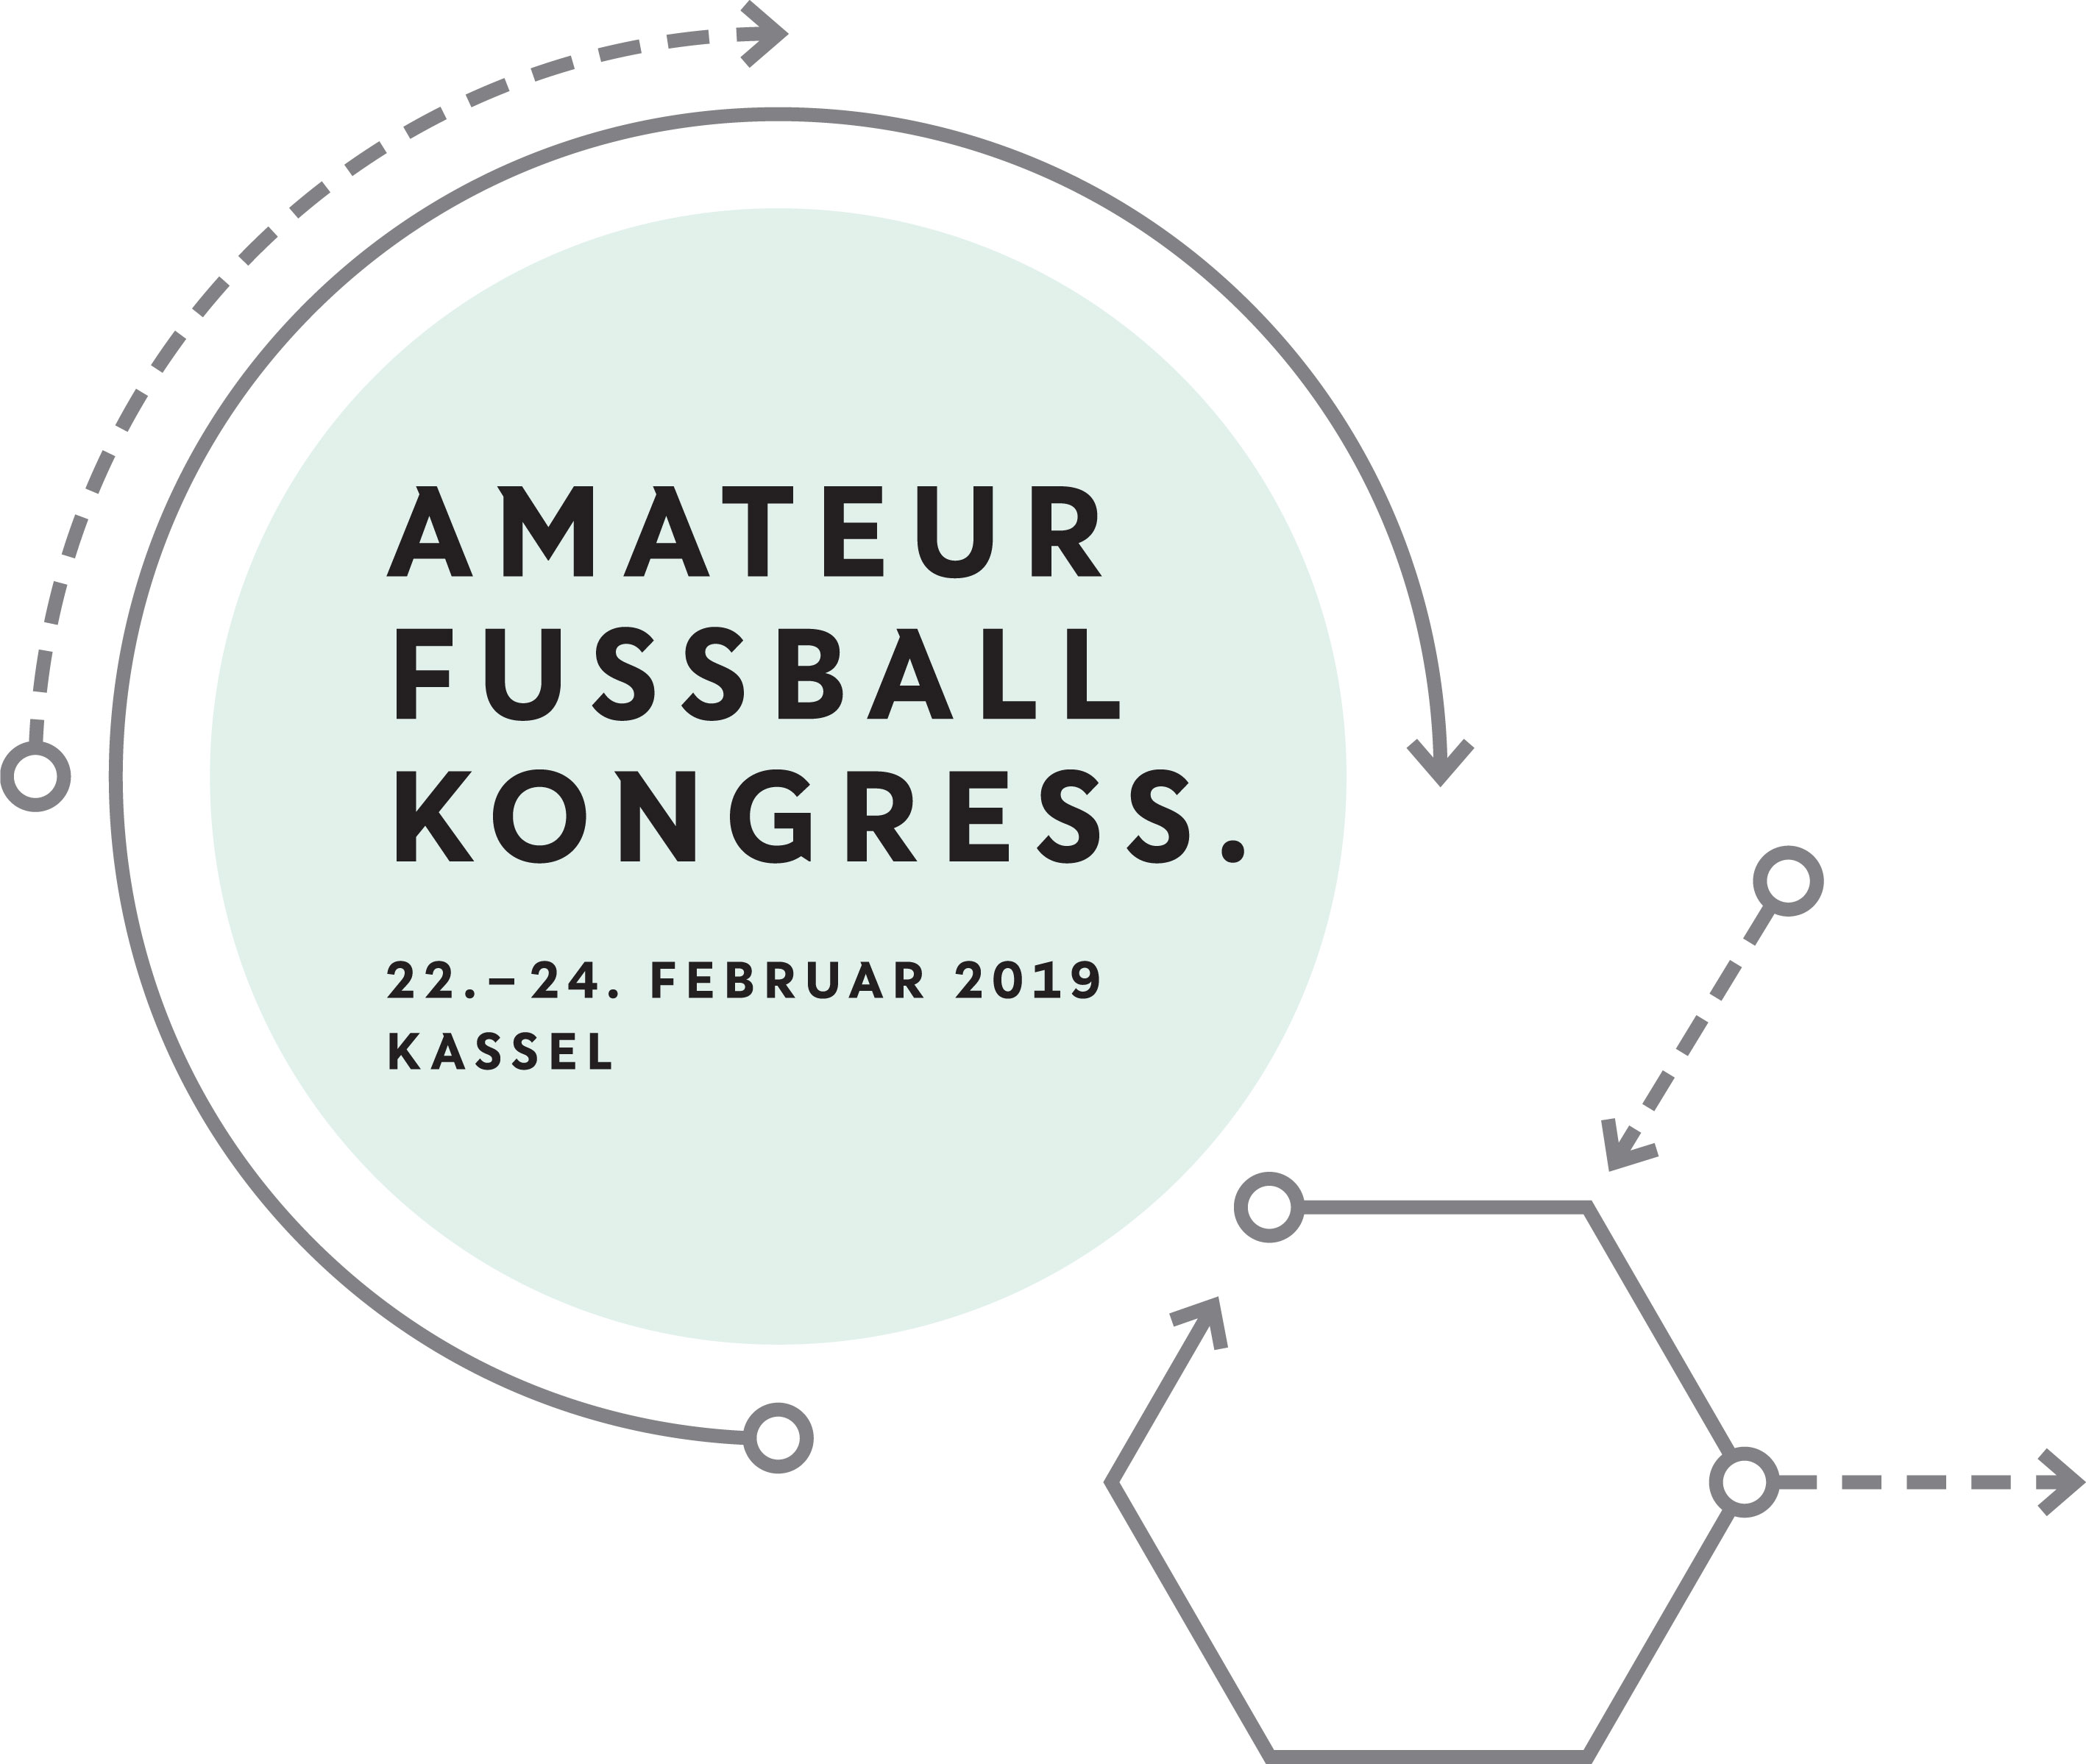 Amateurfu�ballkongress